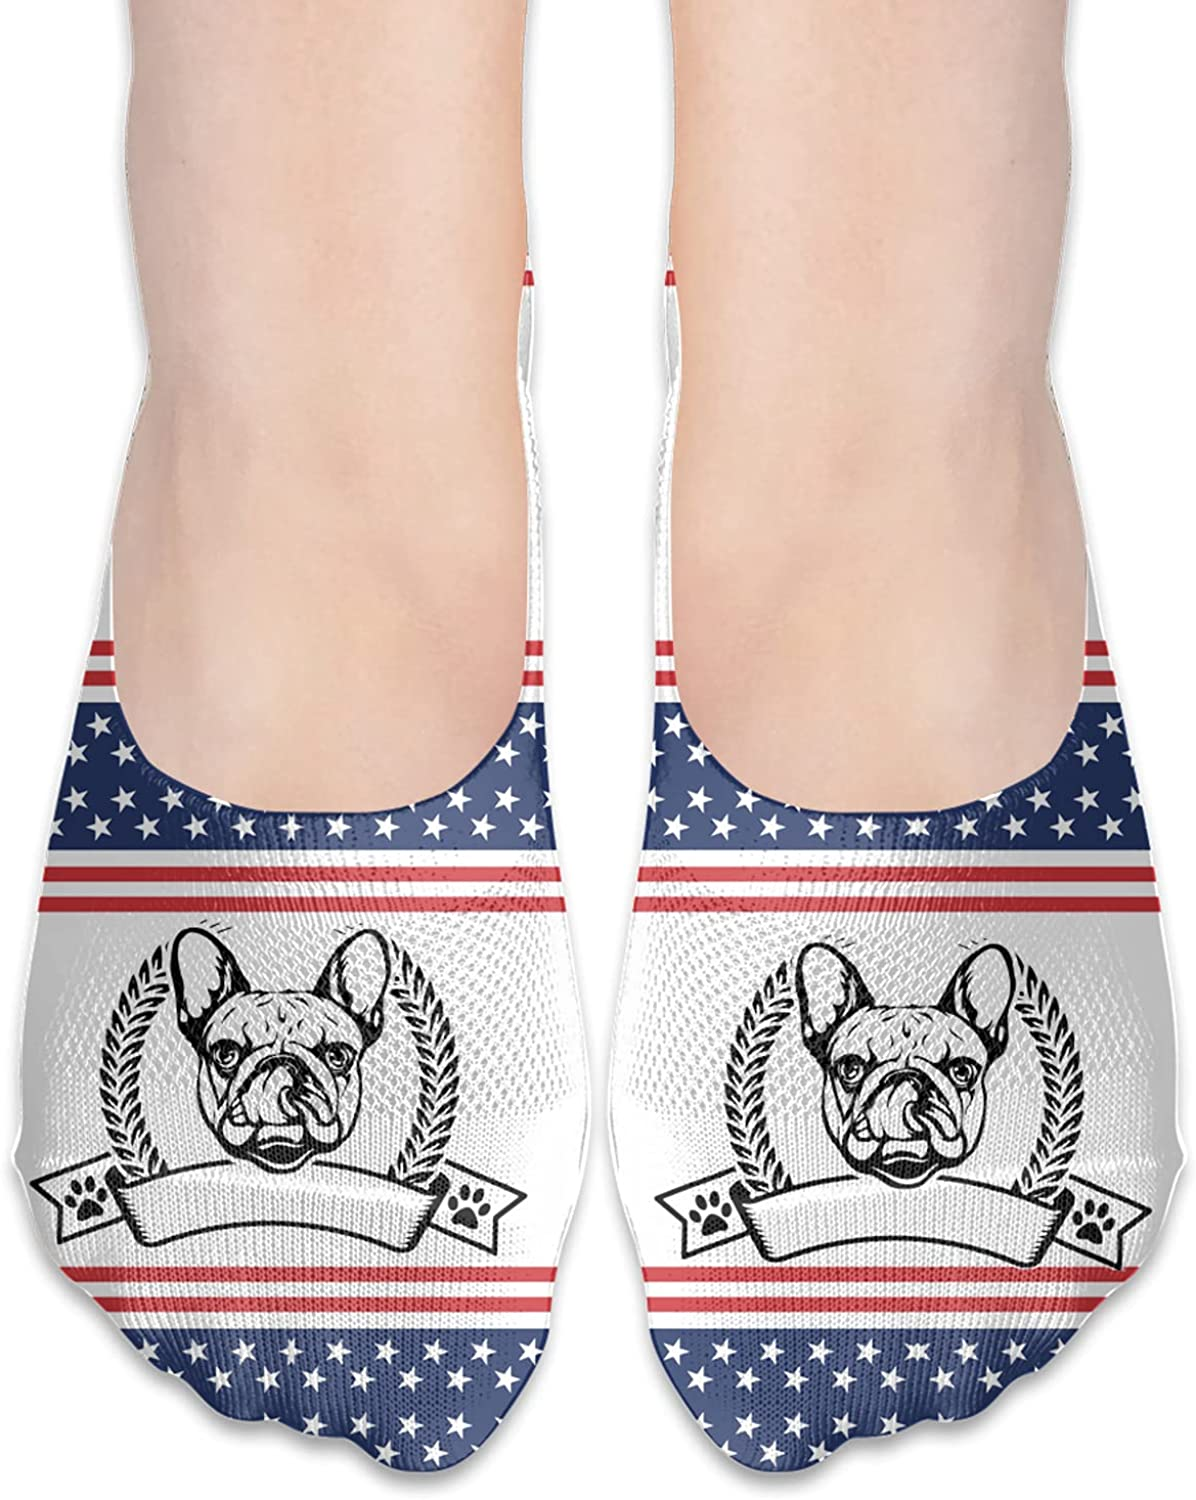 French Bulldog Unisex Adult Breathable Liner Socks Non Slip No Show Ankle Socks Low Cut Invisible Socks